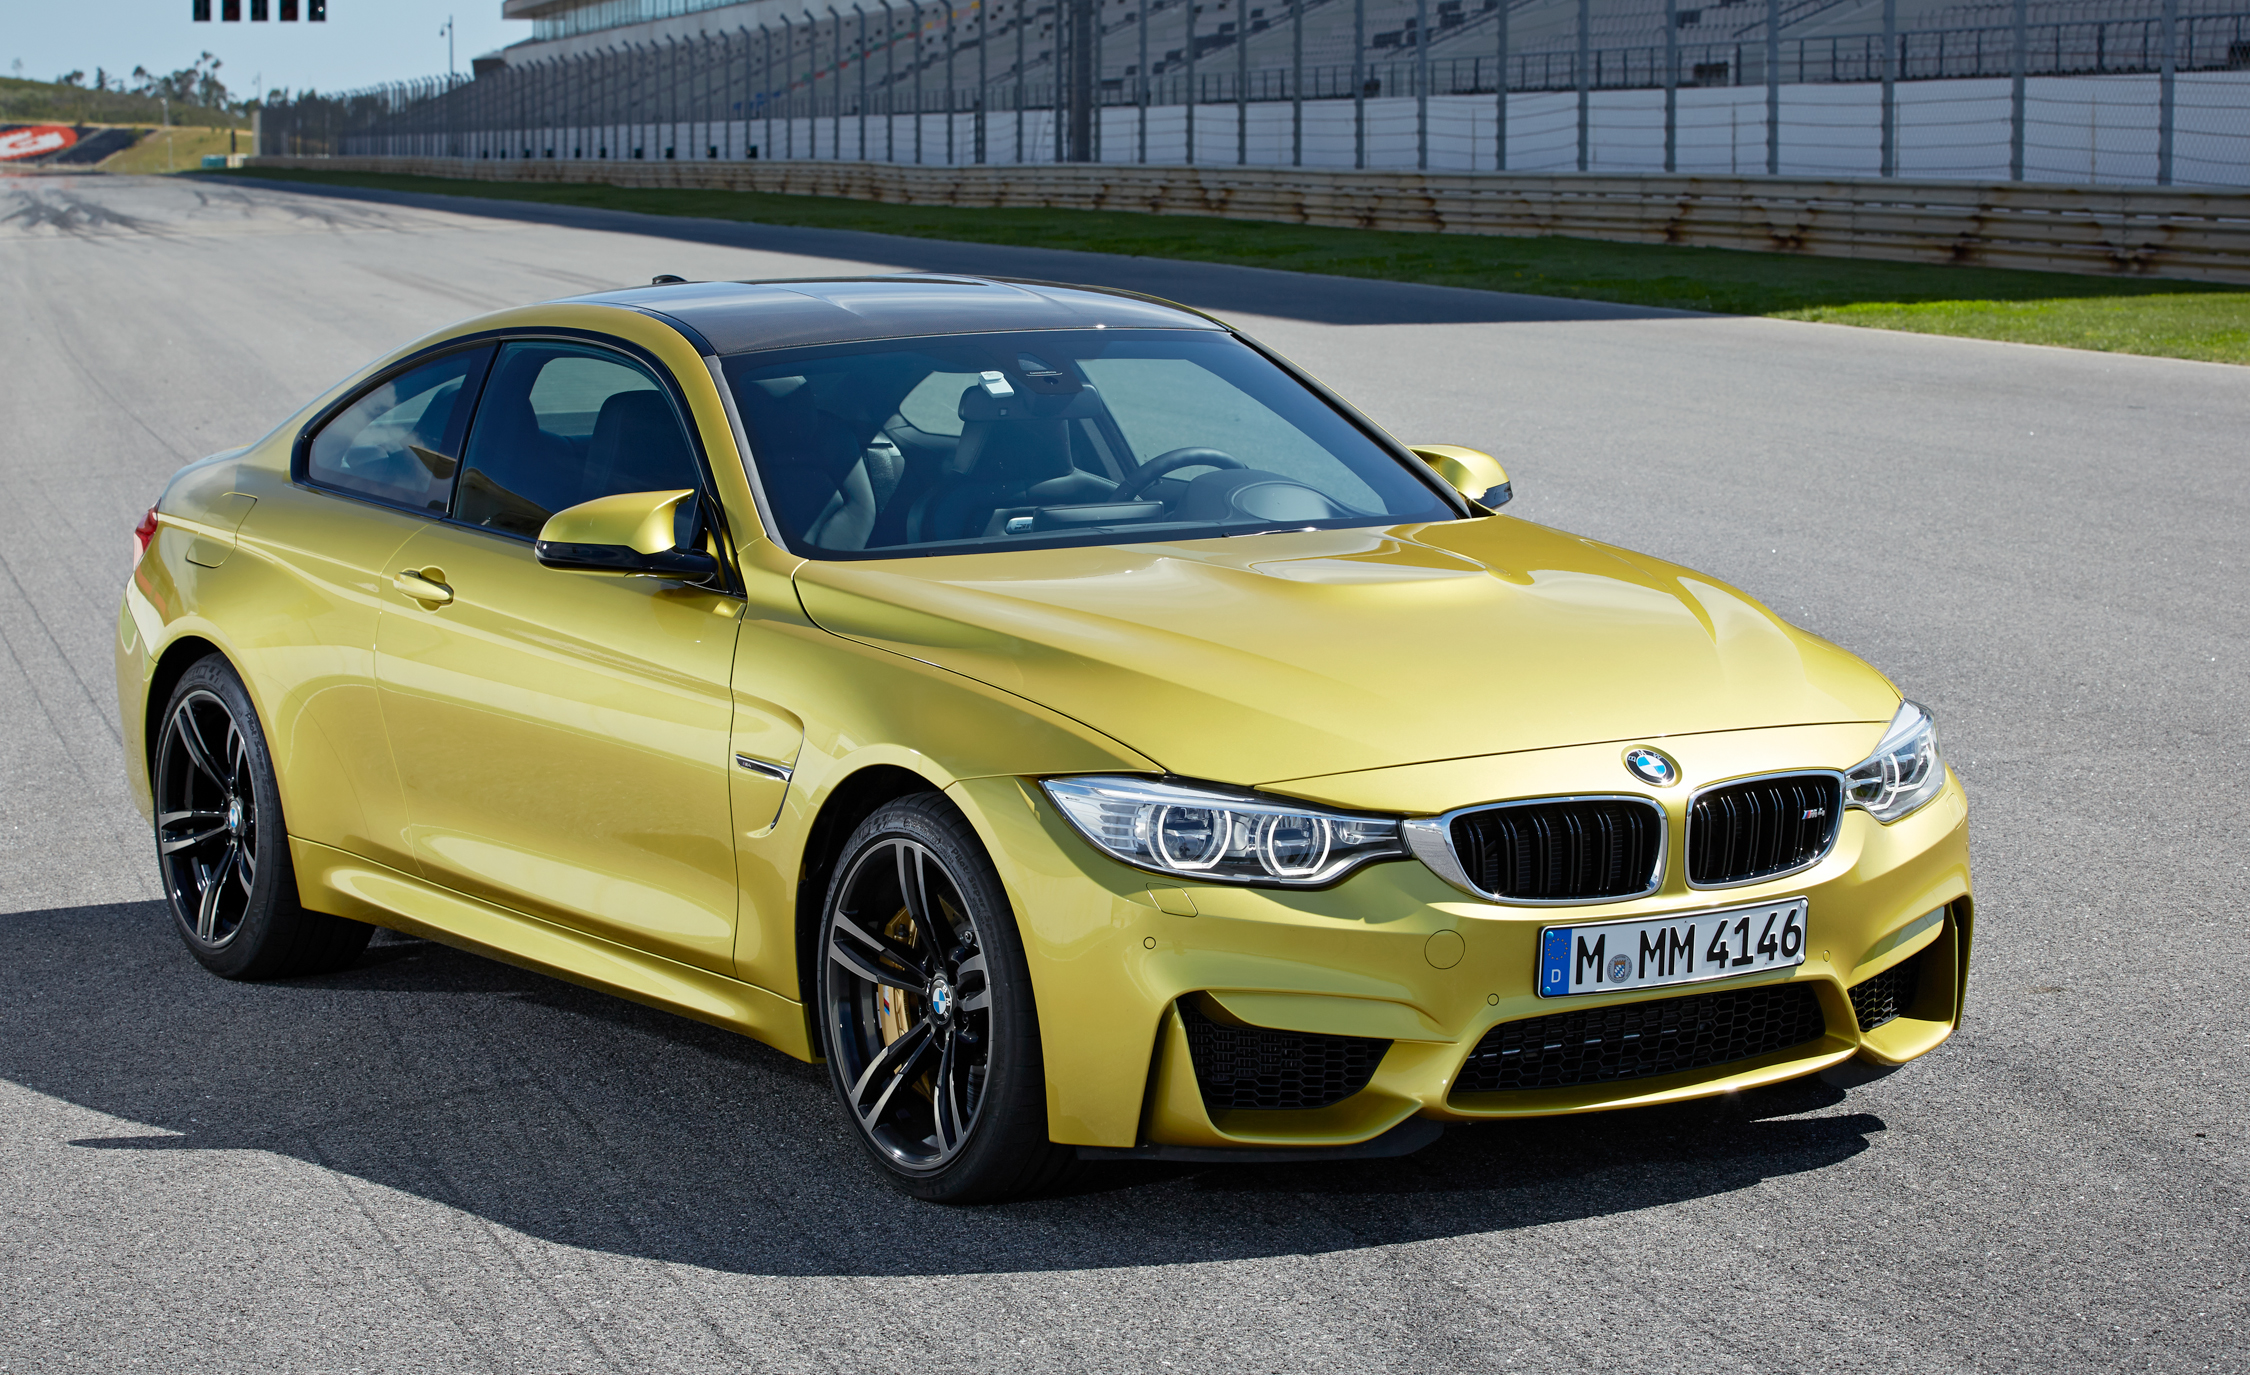 2015 BMW M4 Coupe Exterior Preview